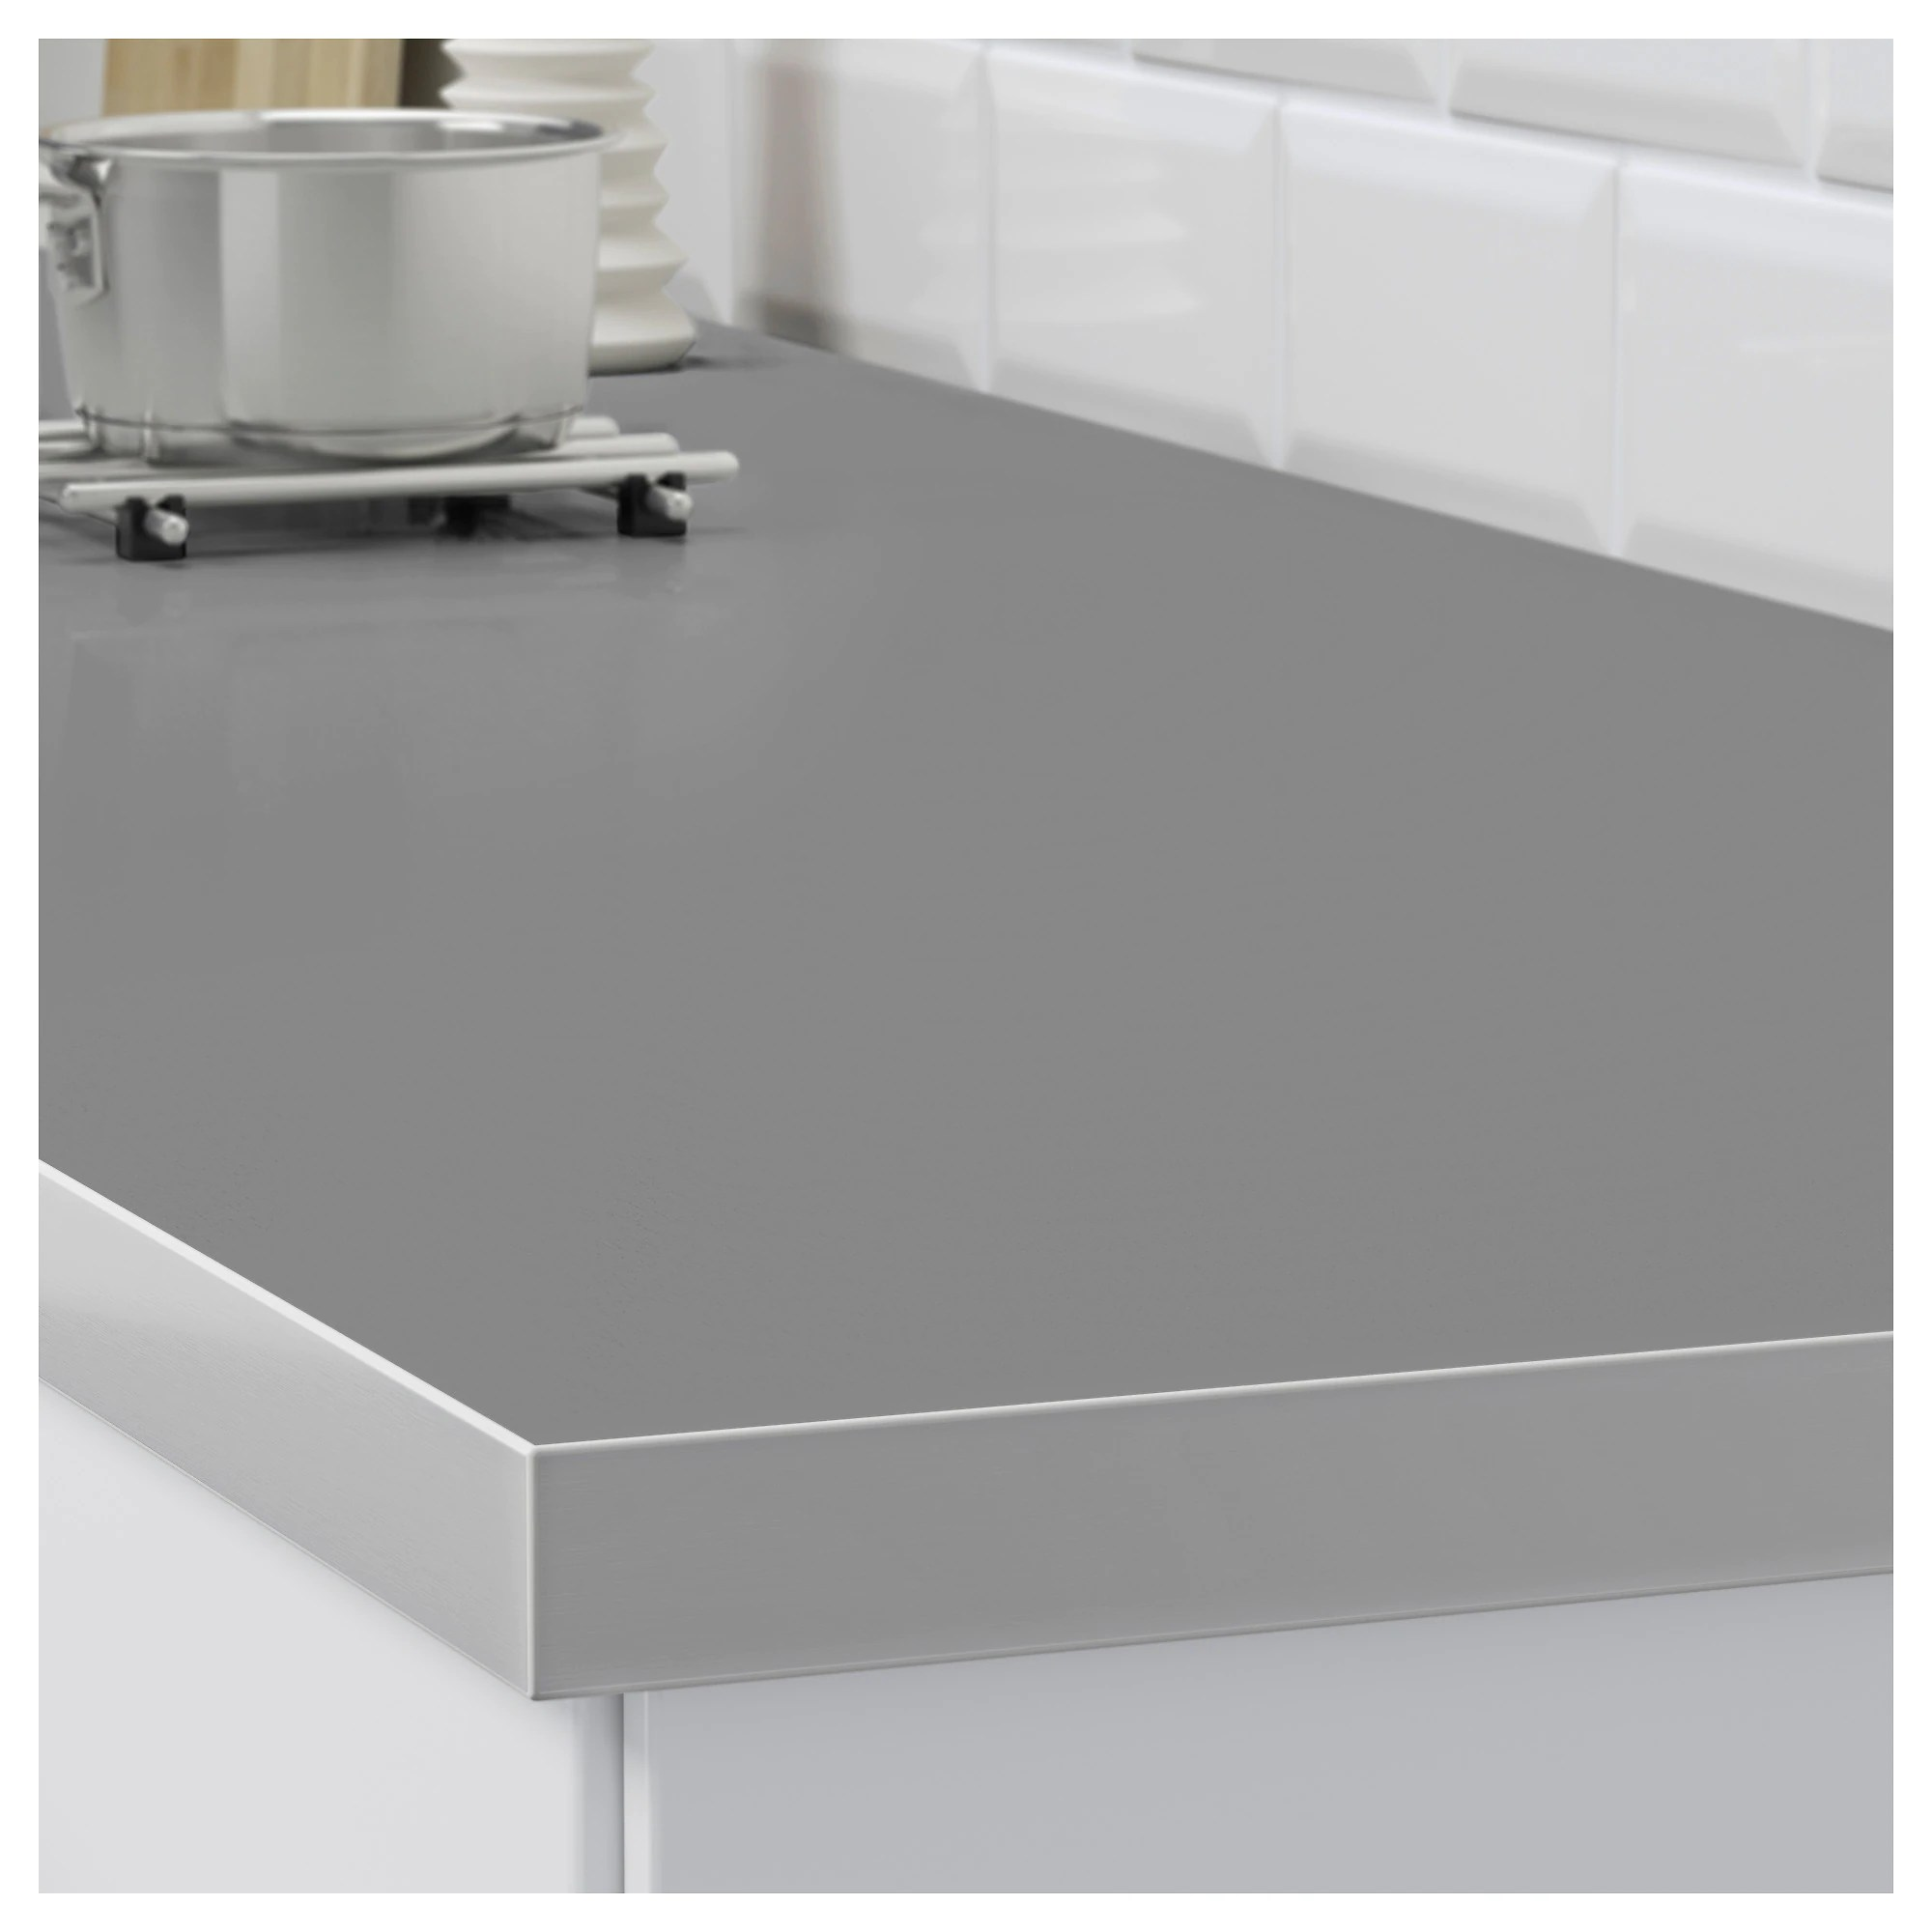 Countertop Double Sided Hällestad White Aluminum Effect Aluminum Effect Metal Effect Edge Laminate With Metal Effect Edge